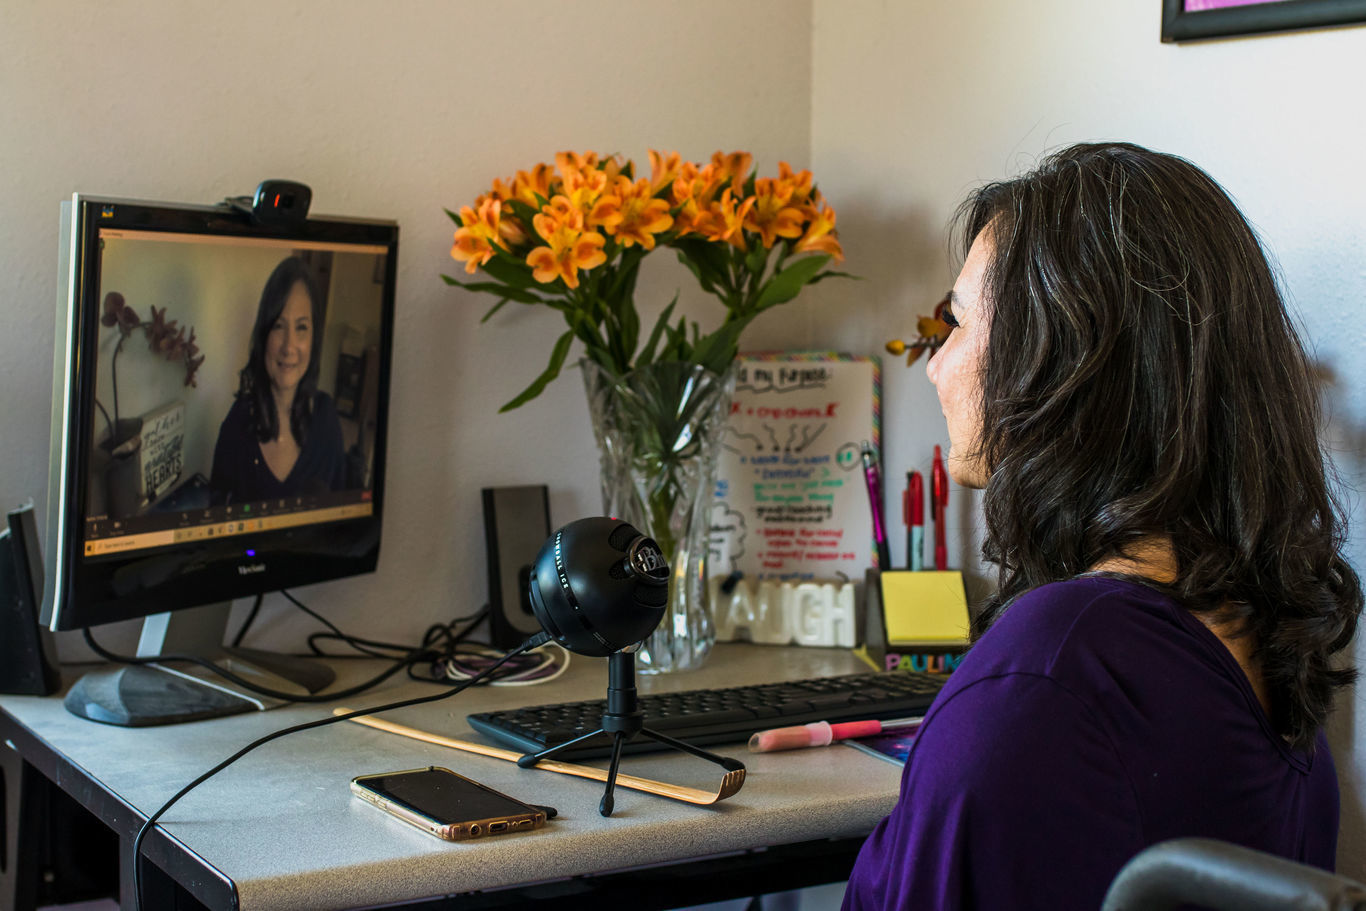 Woman with tan skin and dark hair taking a video on the computer.